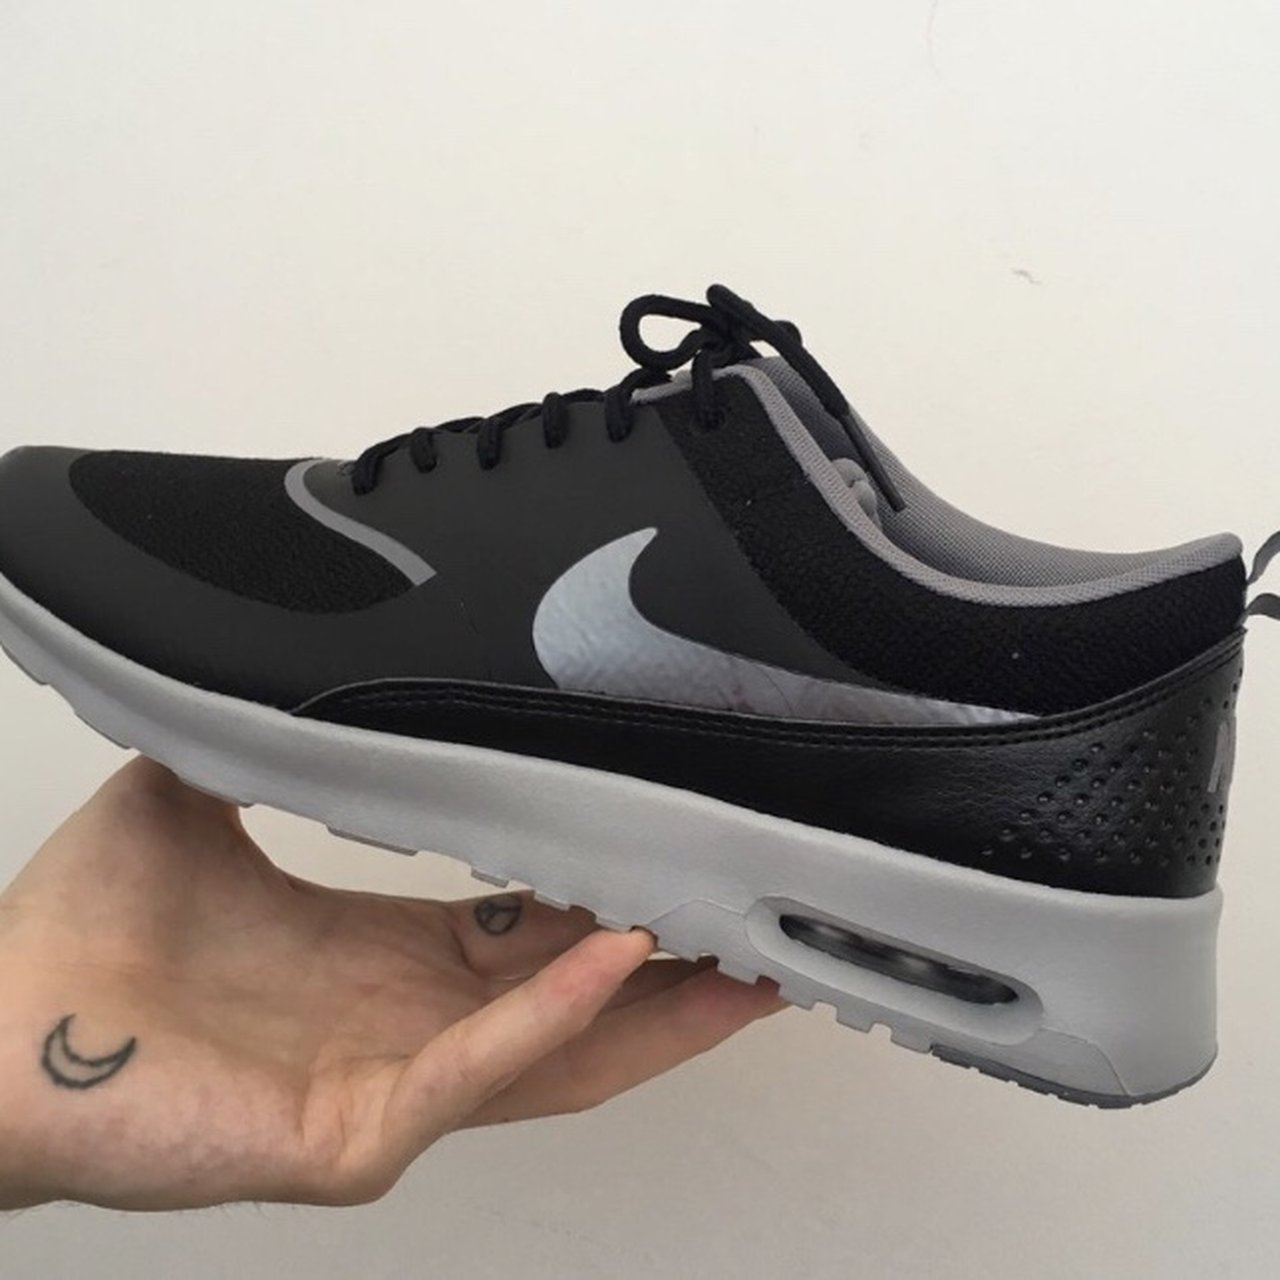 03c65d47144 Nike Air Max Thea    worn a handful of times    amazing shoe - Depop